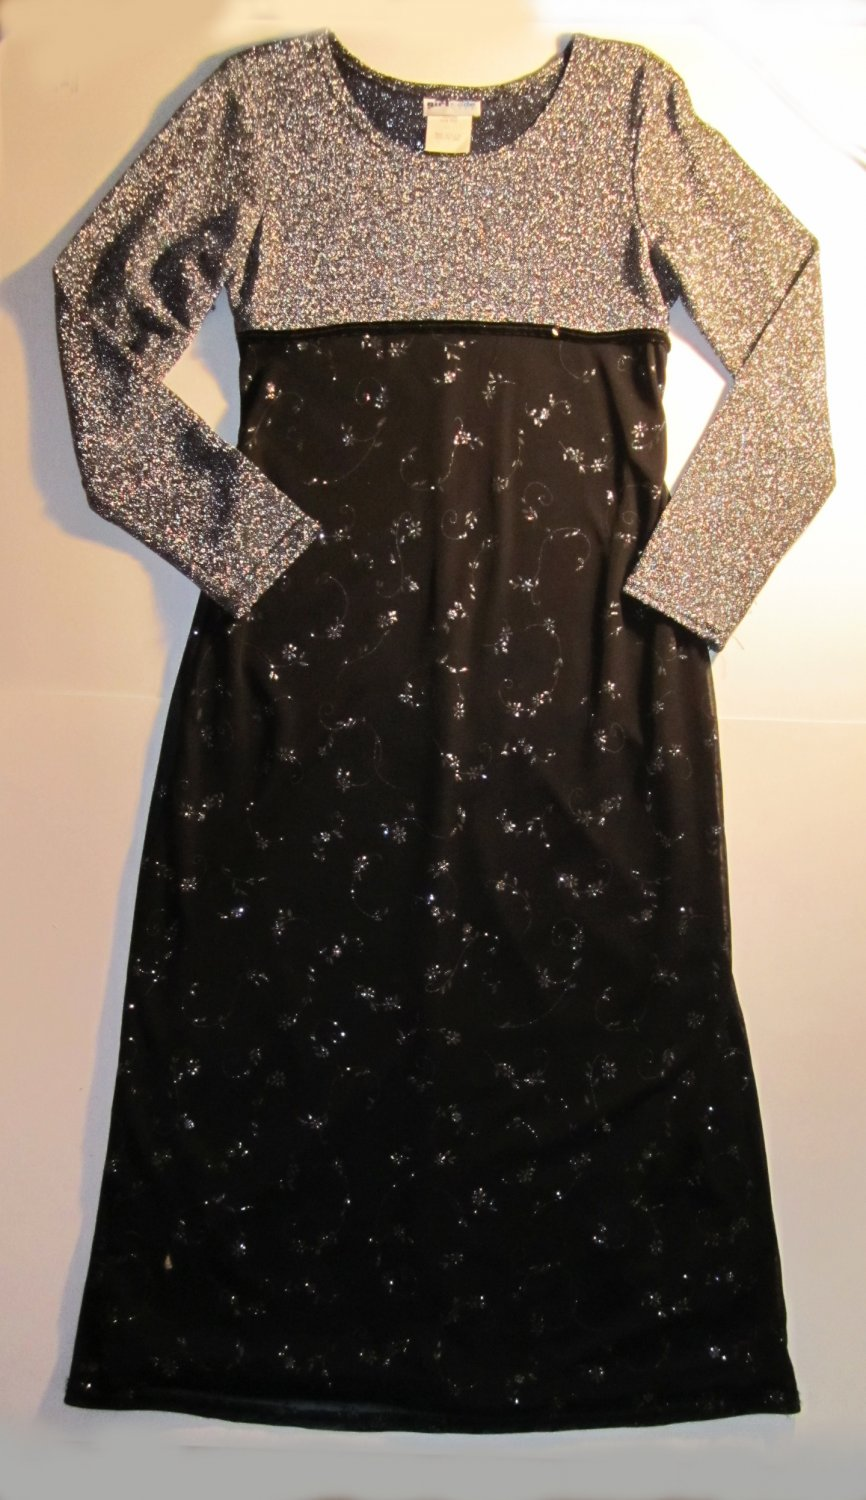 Girl Code $88 Girls Silver & Black Long Sleeve Party Dress Girls Size 12  TG21